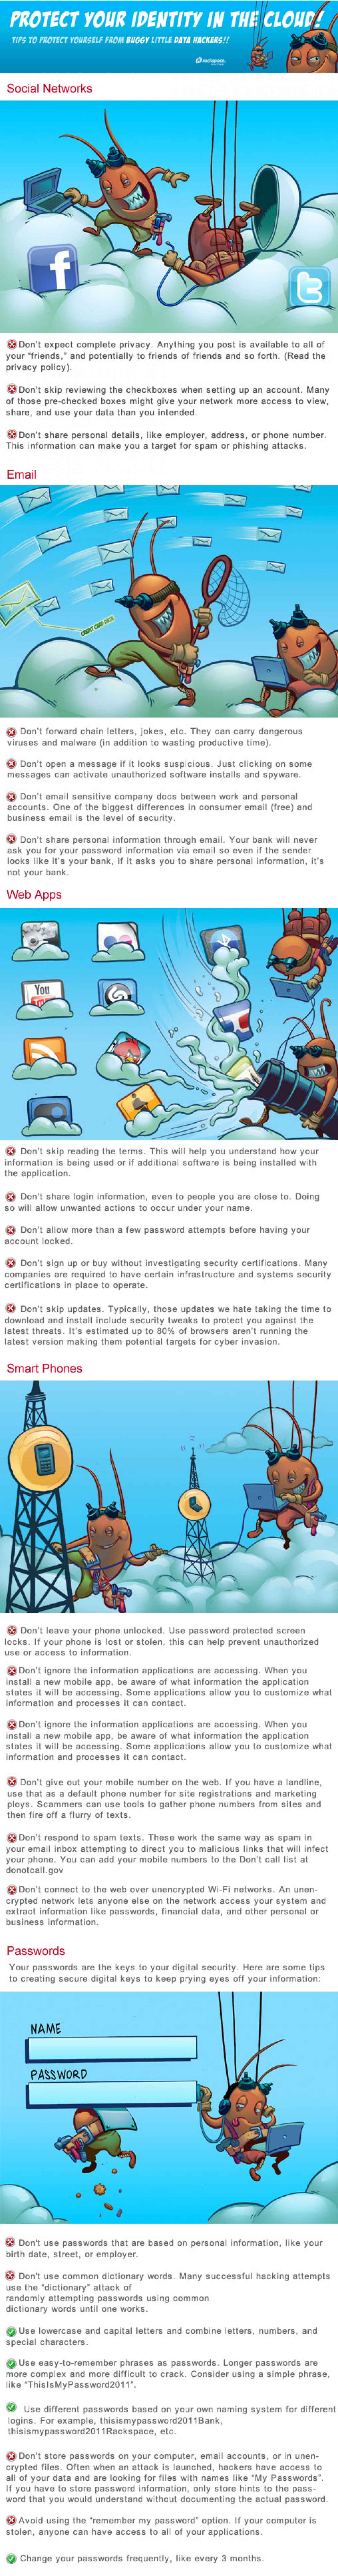 Online Security Protecting Your Identity in the Cloud Infographic